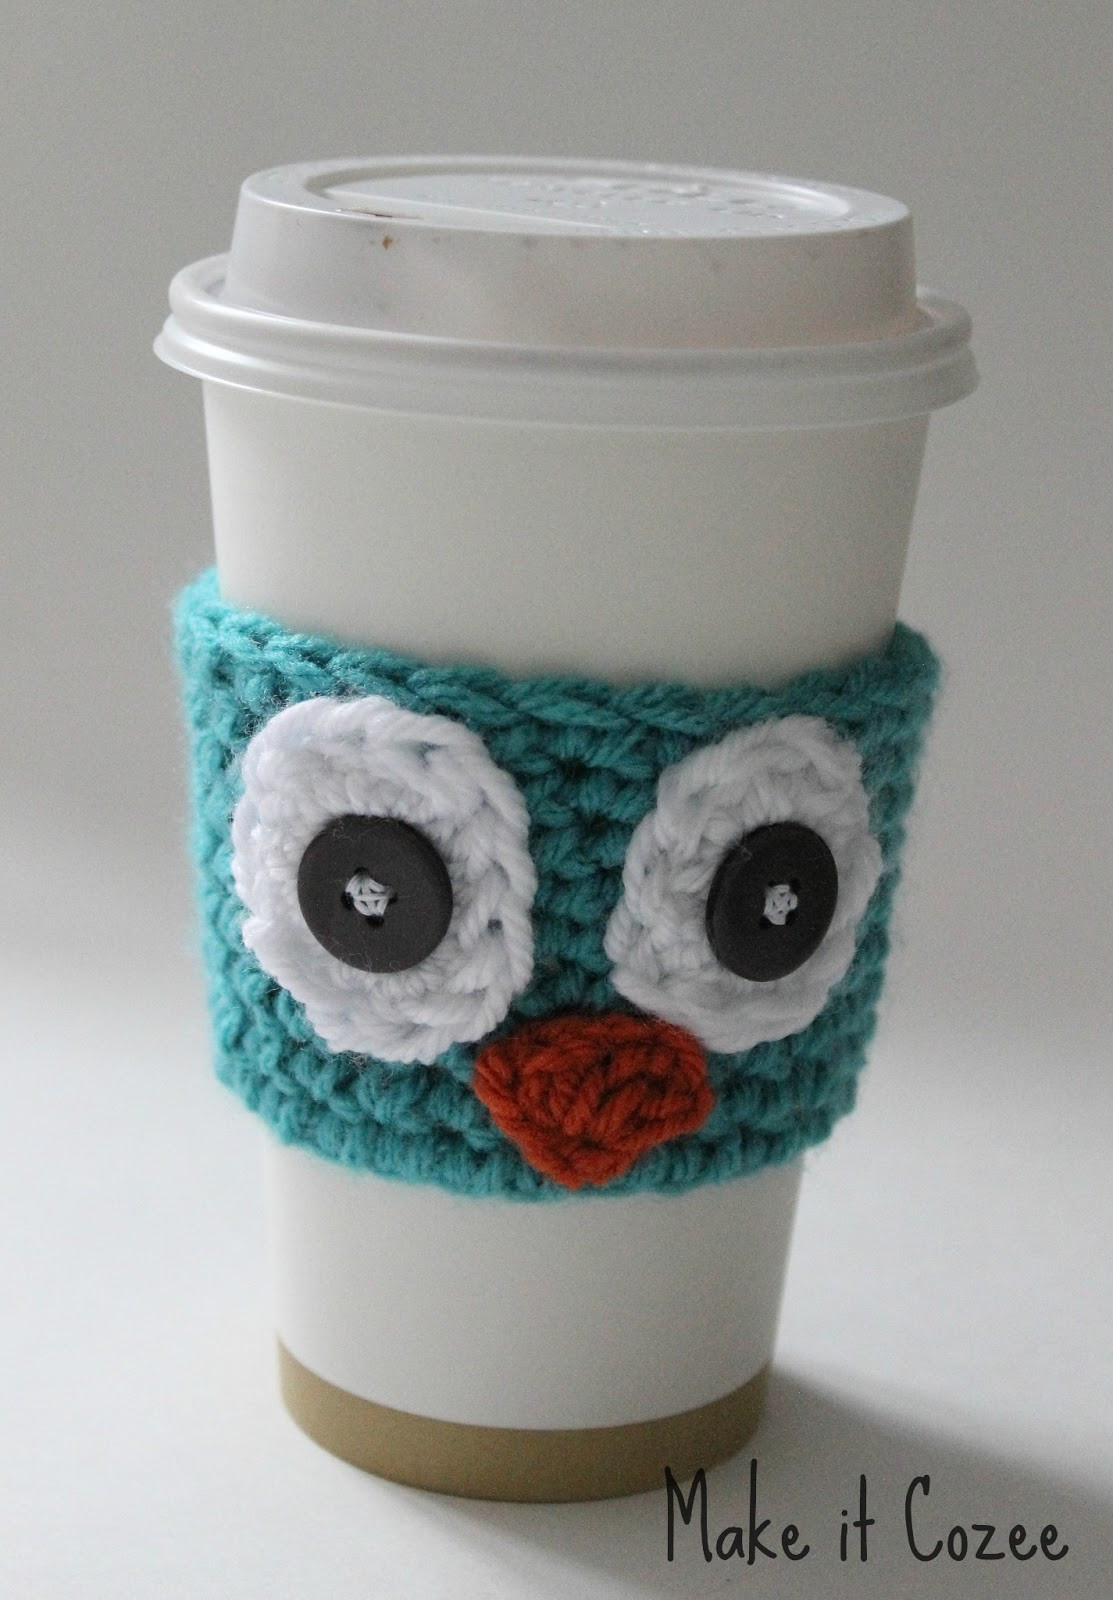 Crochet Coffee Cup Cozy Inspirational Make It Cozee Crochet Owl Coffee Cozy Of Crochet Coffee Cup Cozy Inspirational Crochet Coffee Cup Cozy Pattern Pdf Download Coffee Cup Cozy